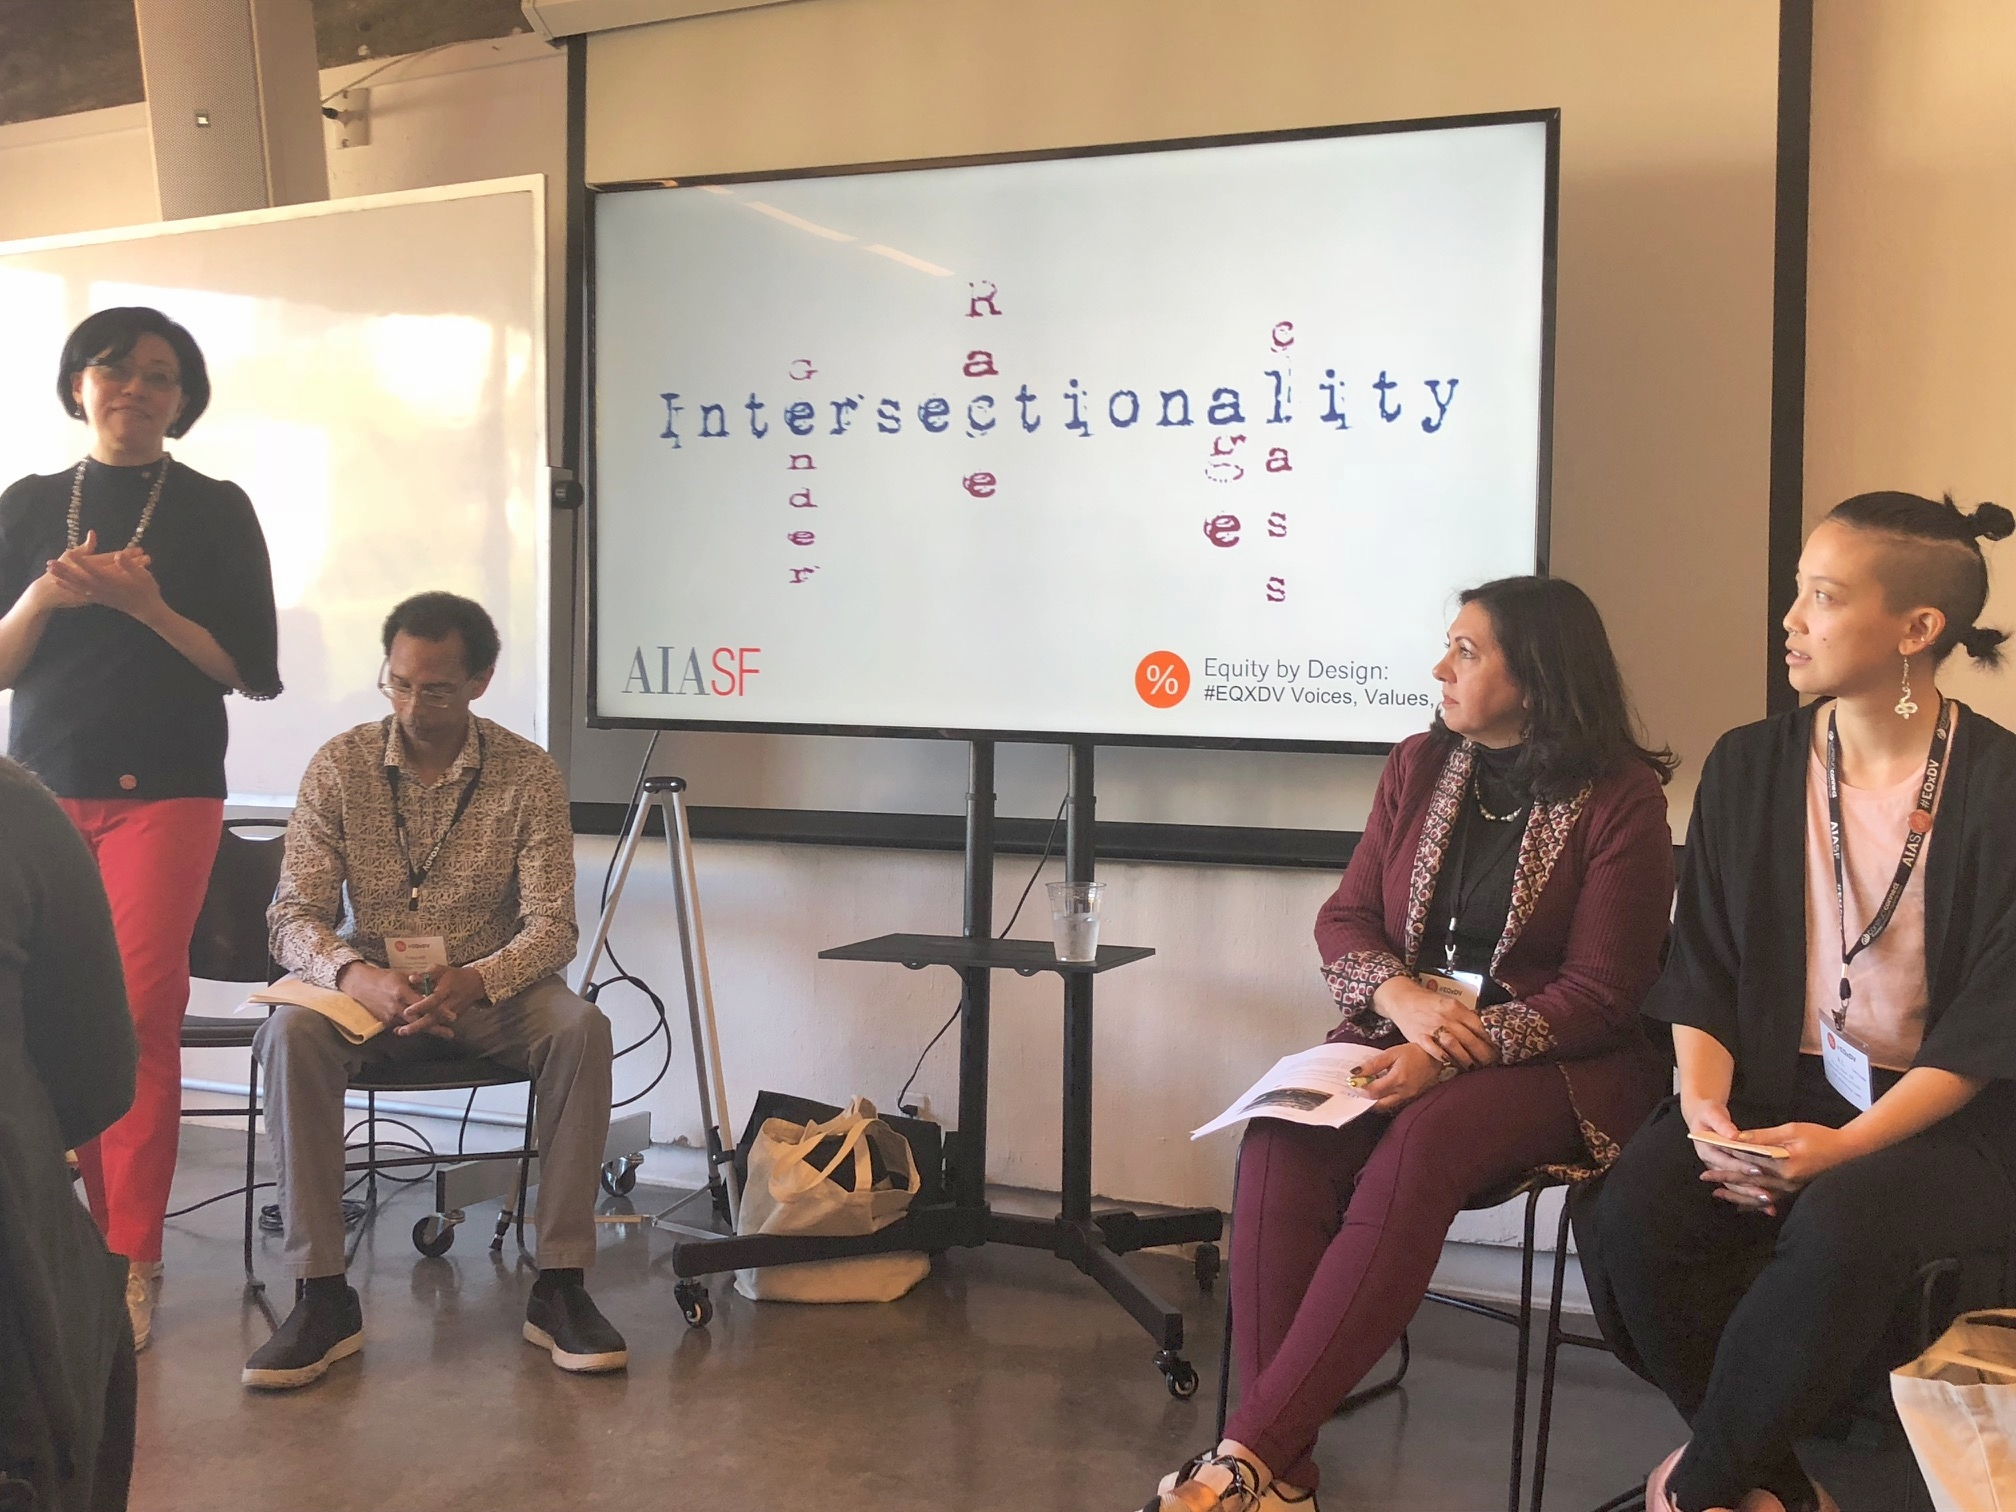 Intersectionality Workshop Presenters - (Right to Left) Rosa Sheng, Prescott Revis, Mani Farhadi, and A.L. Hu. Photo by Taylor Holloway.